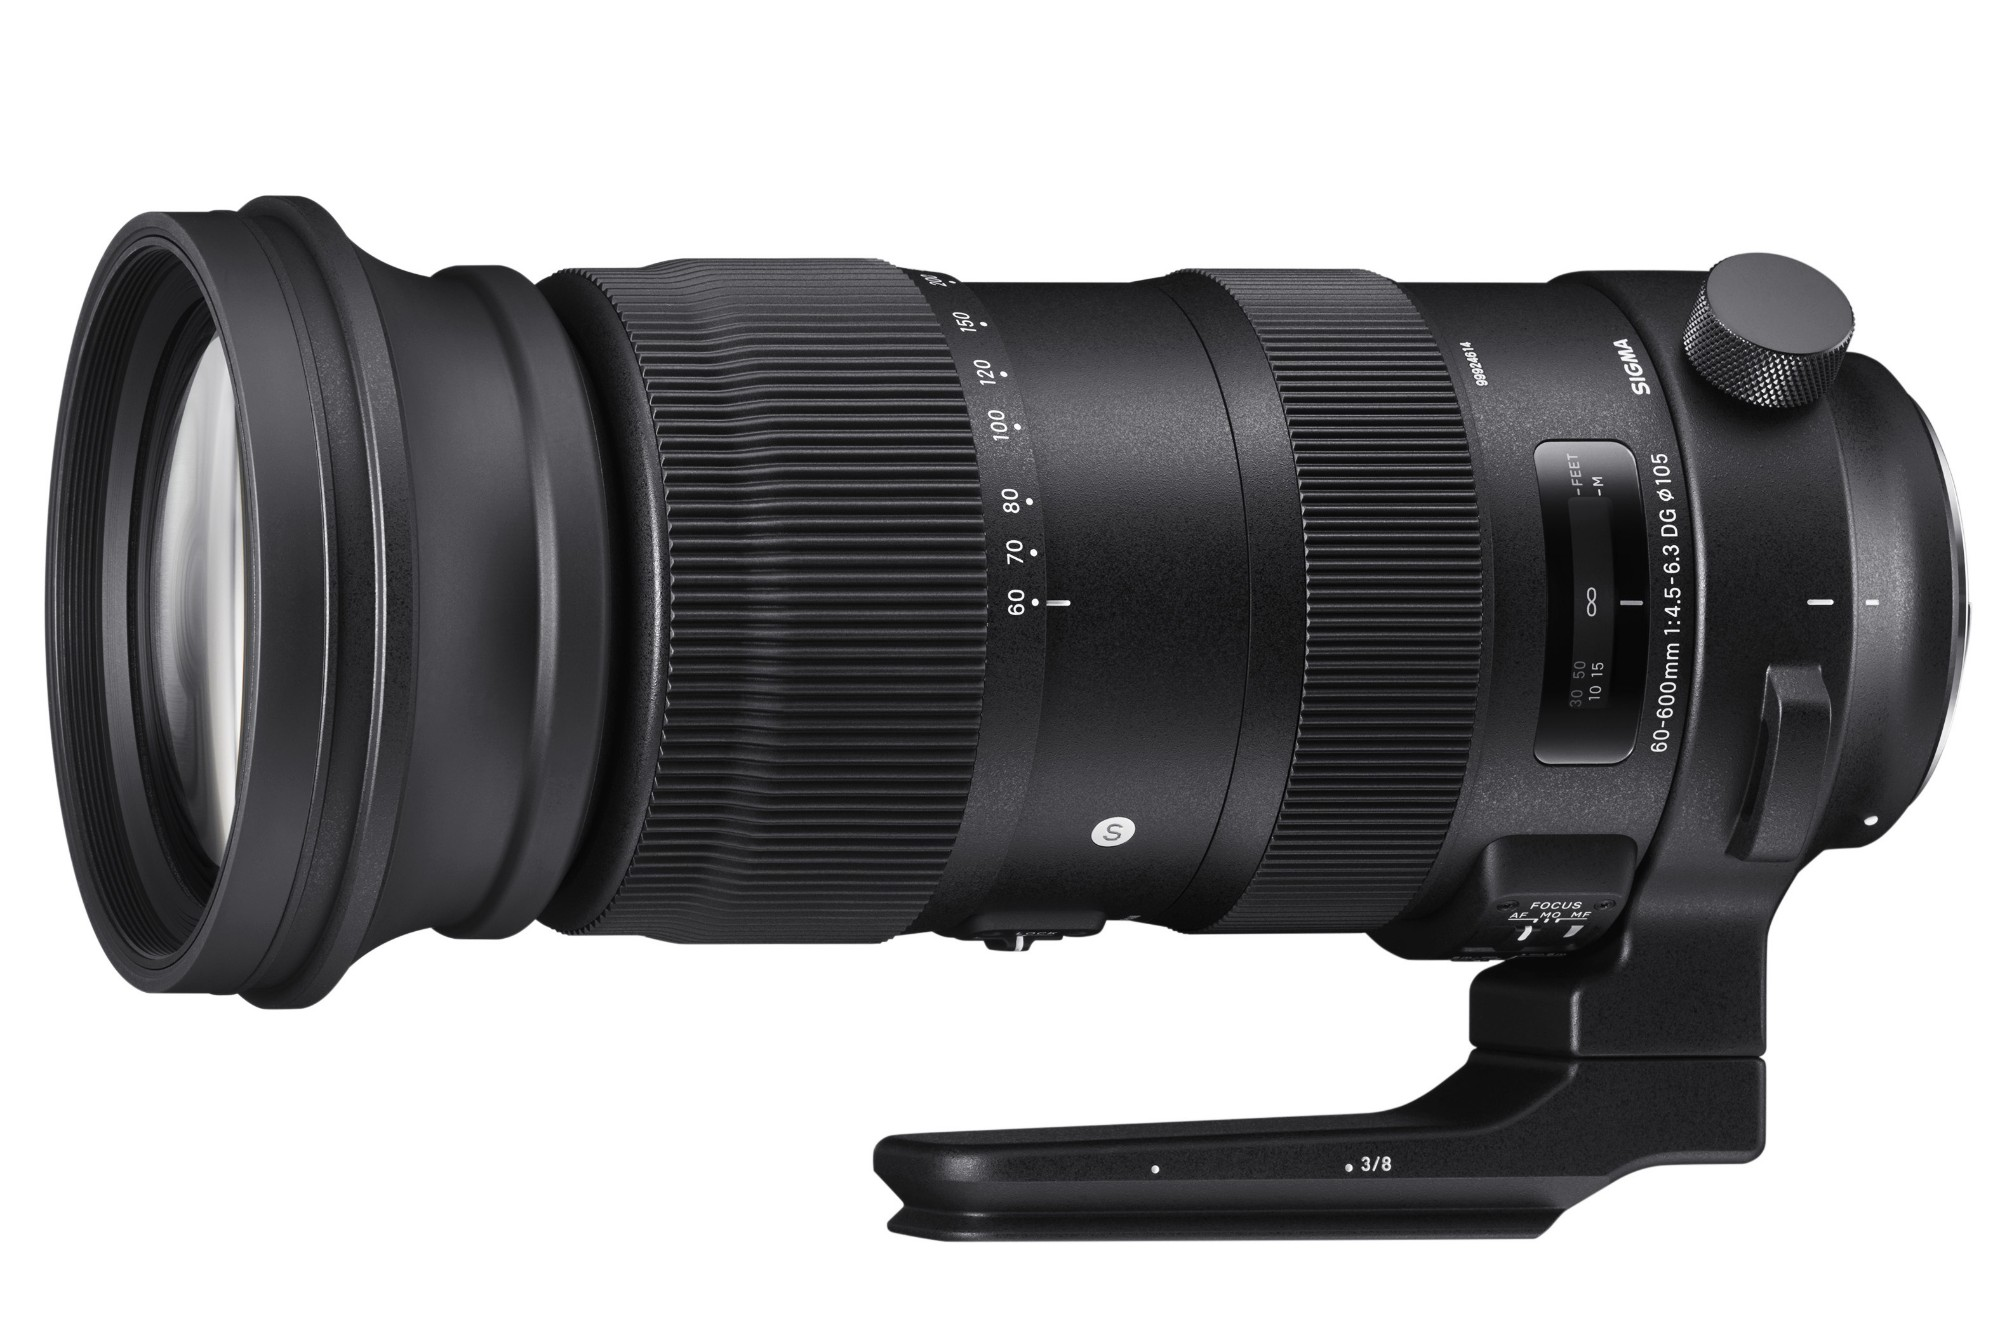 Sigma 60-600mm f/4.5-6.3 DG OS HSM Sport Telephoto Zoom Lens Canon Fit